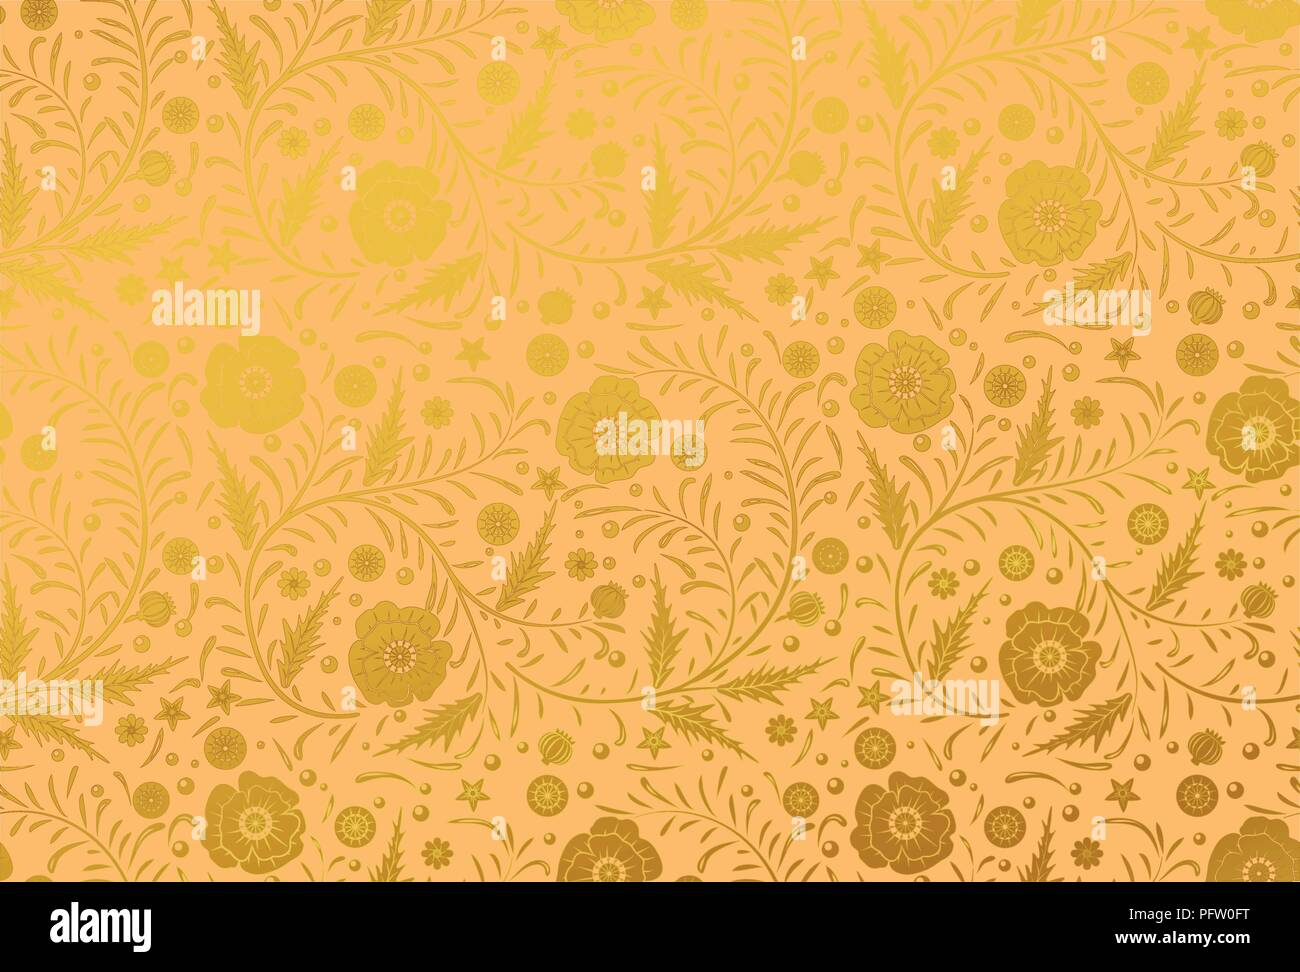 Vector Seamless floral pattern design hand drawn: Golden poppies with vintage leaves on a golden background. Royal luxury - Stock Vector